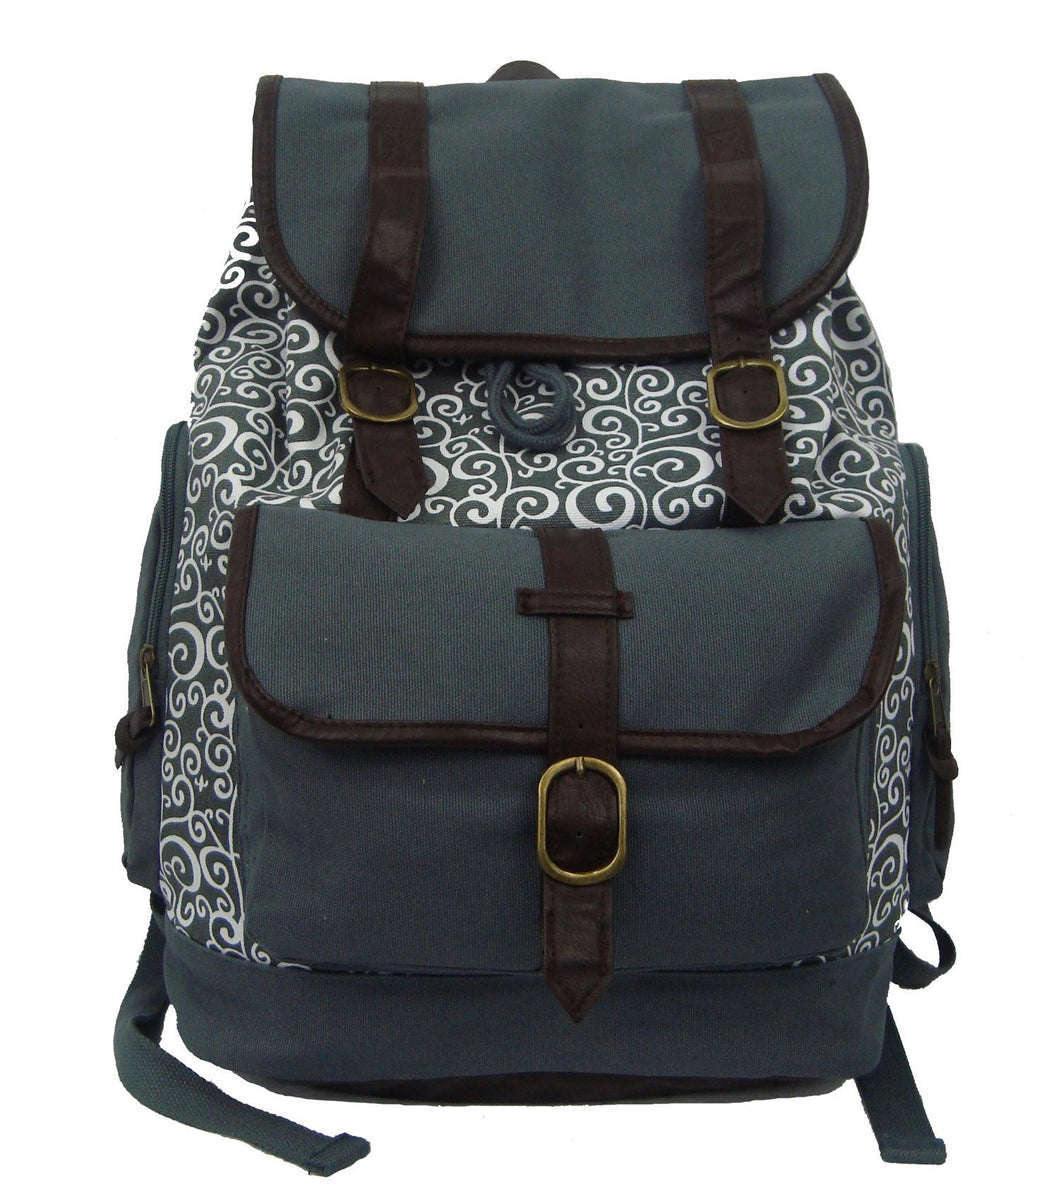 Printed Cotton Canvas Laptop Backpack w/ Swirl Pattern Cotton | Fits 15.6